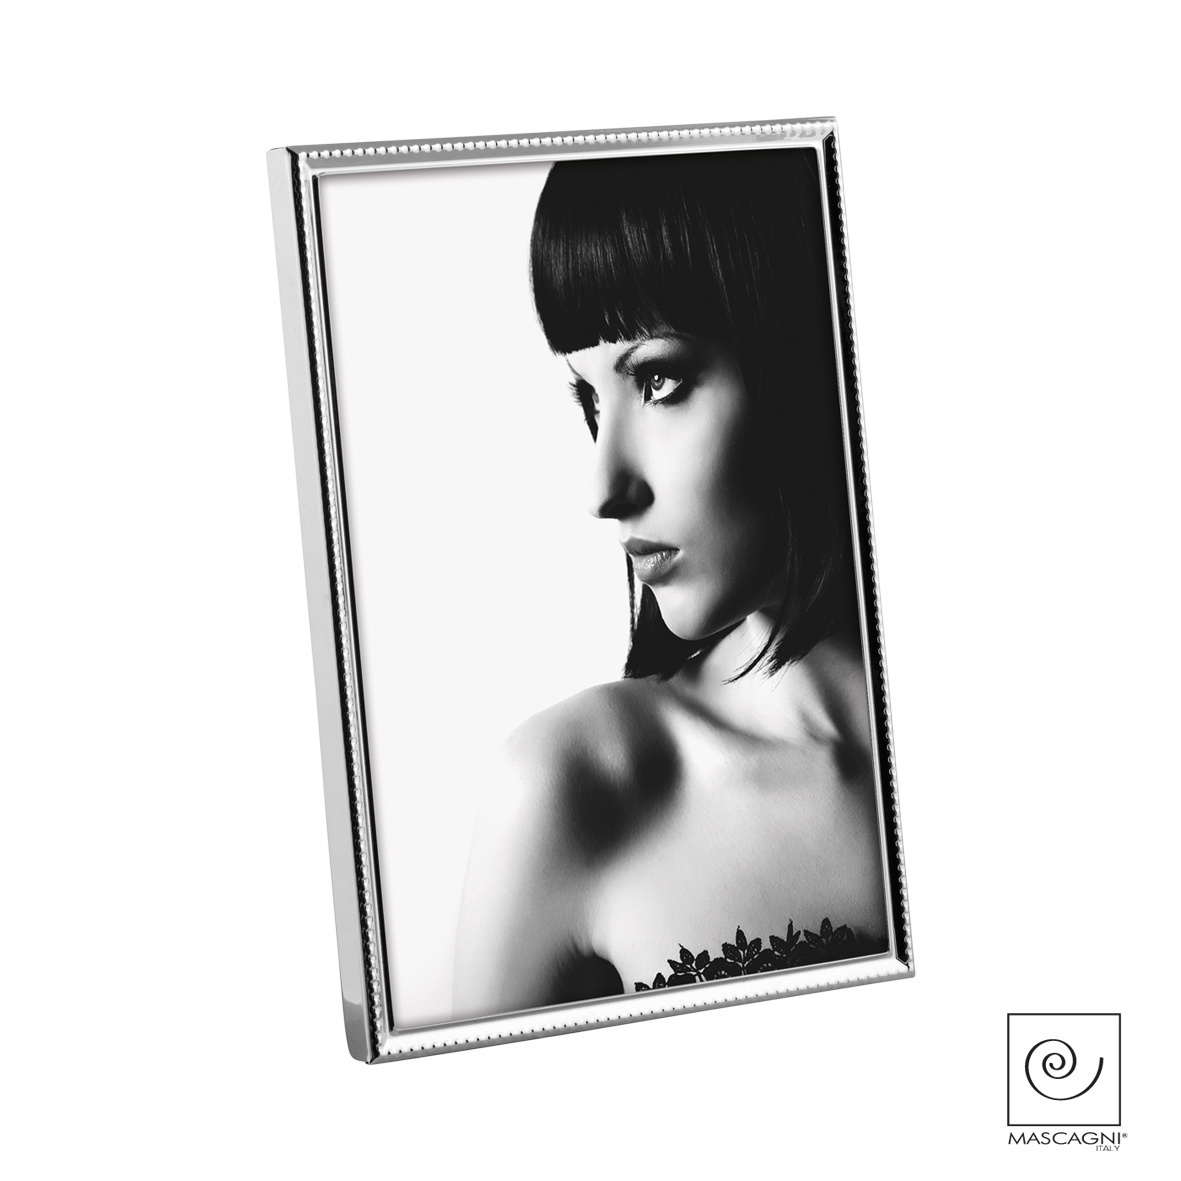 Art Mascagni A540 PHOTO FRAME 10X15